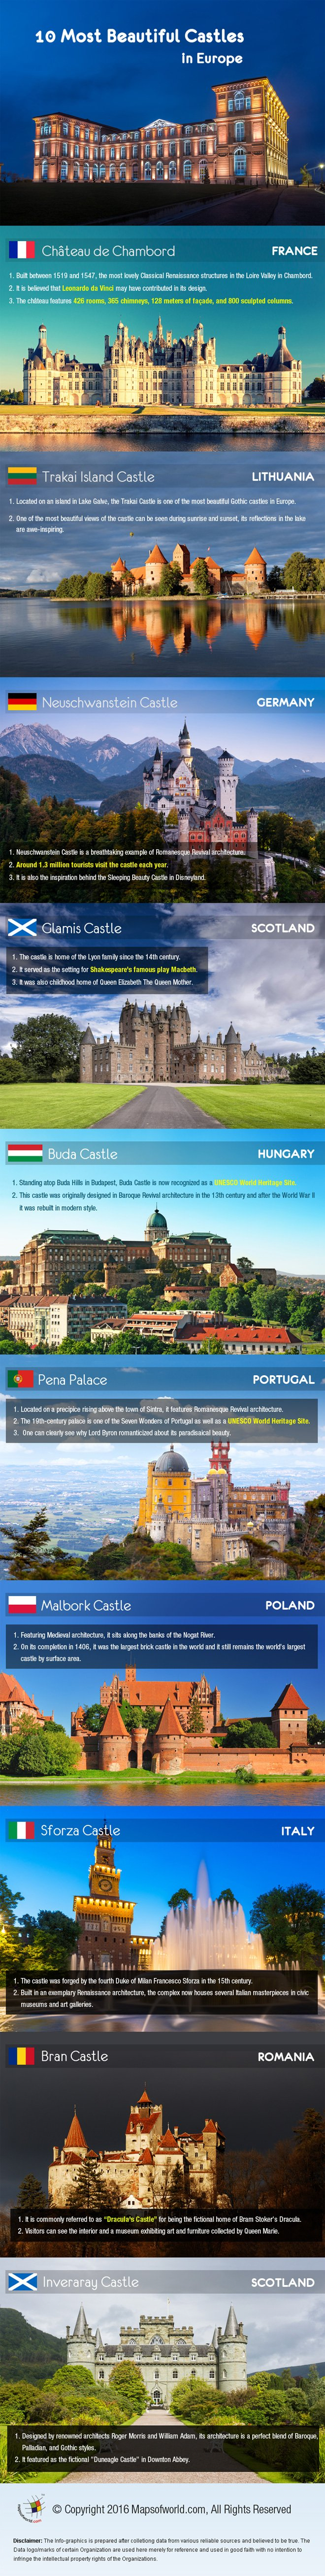 Infographic on 10 Most Beautiful Castles in Europe